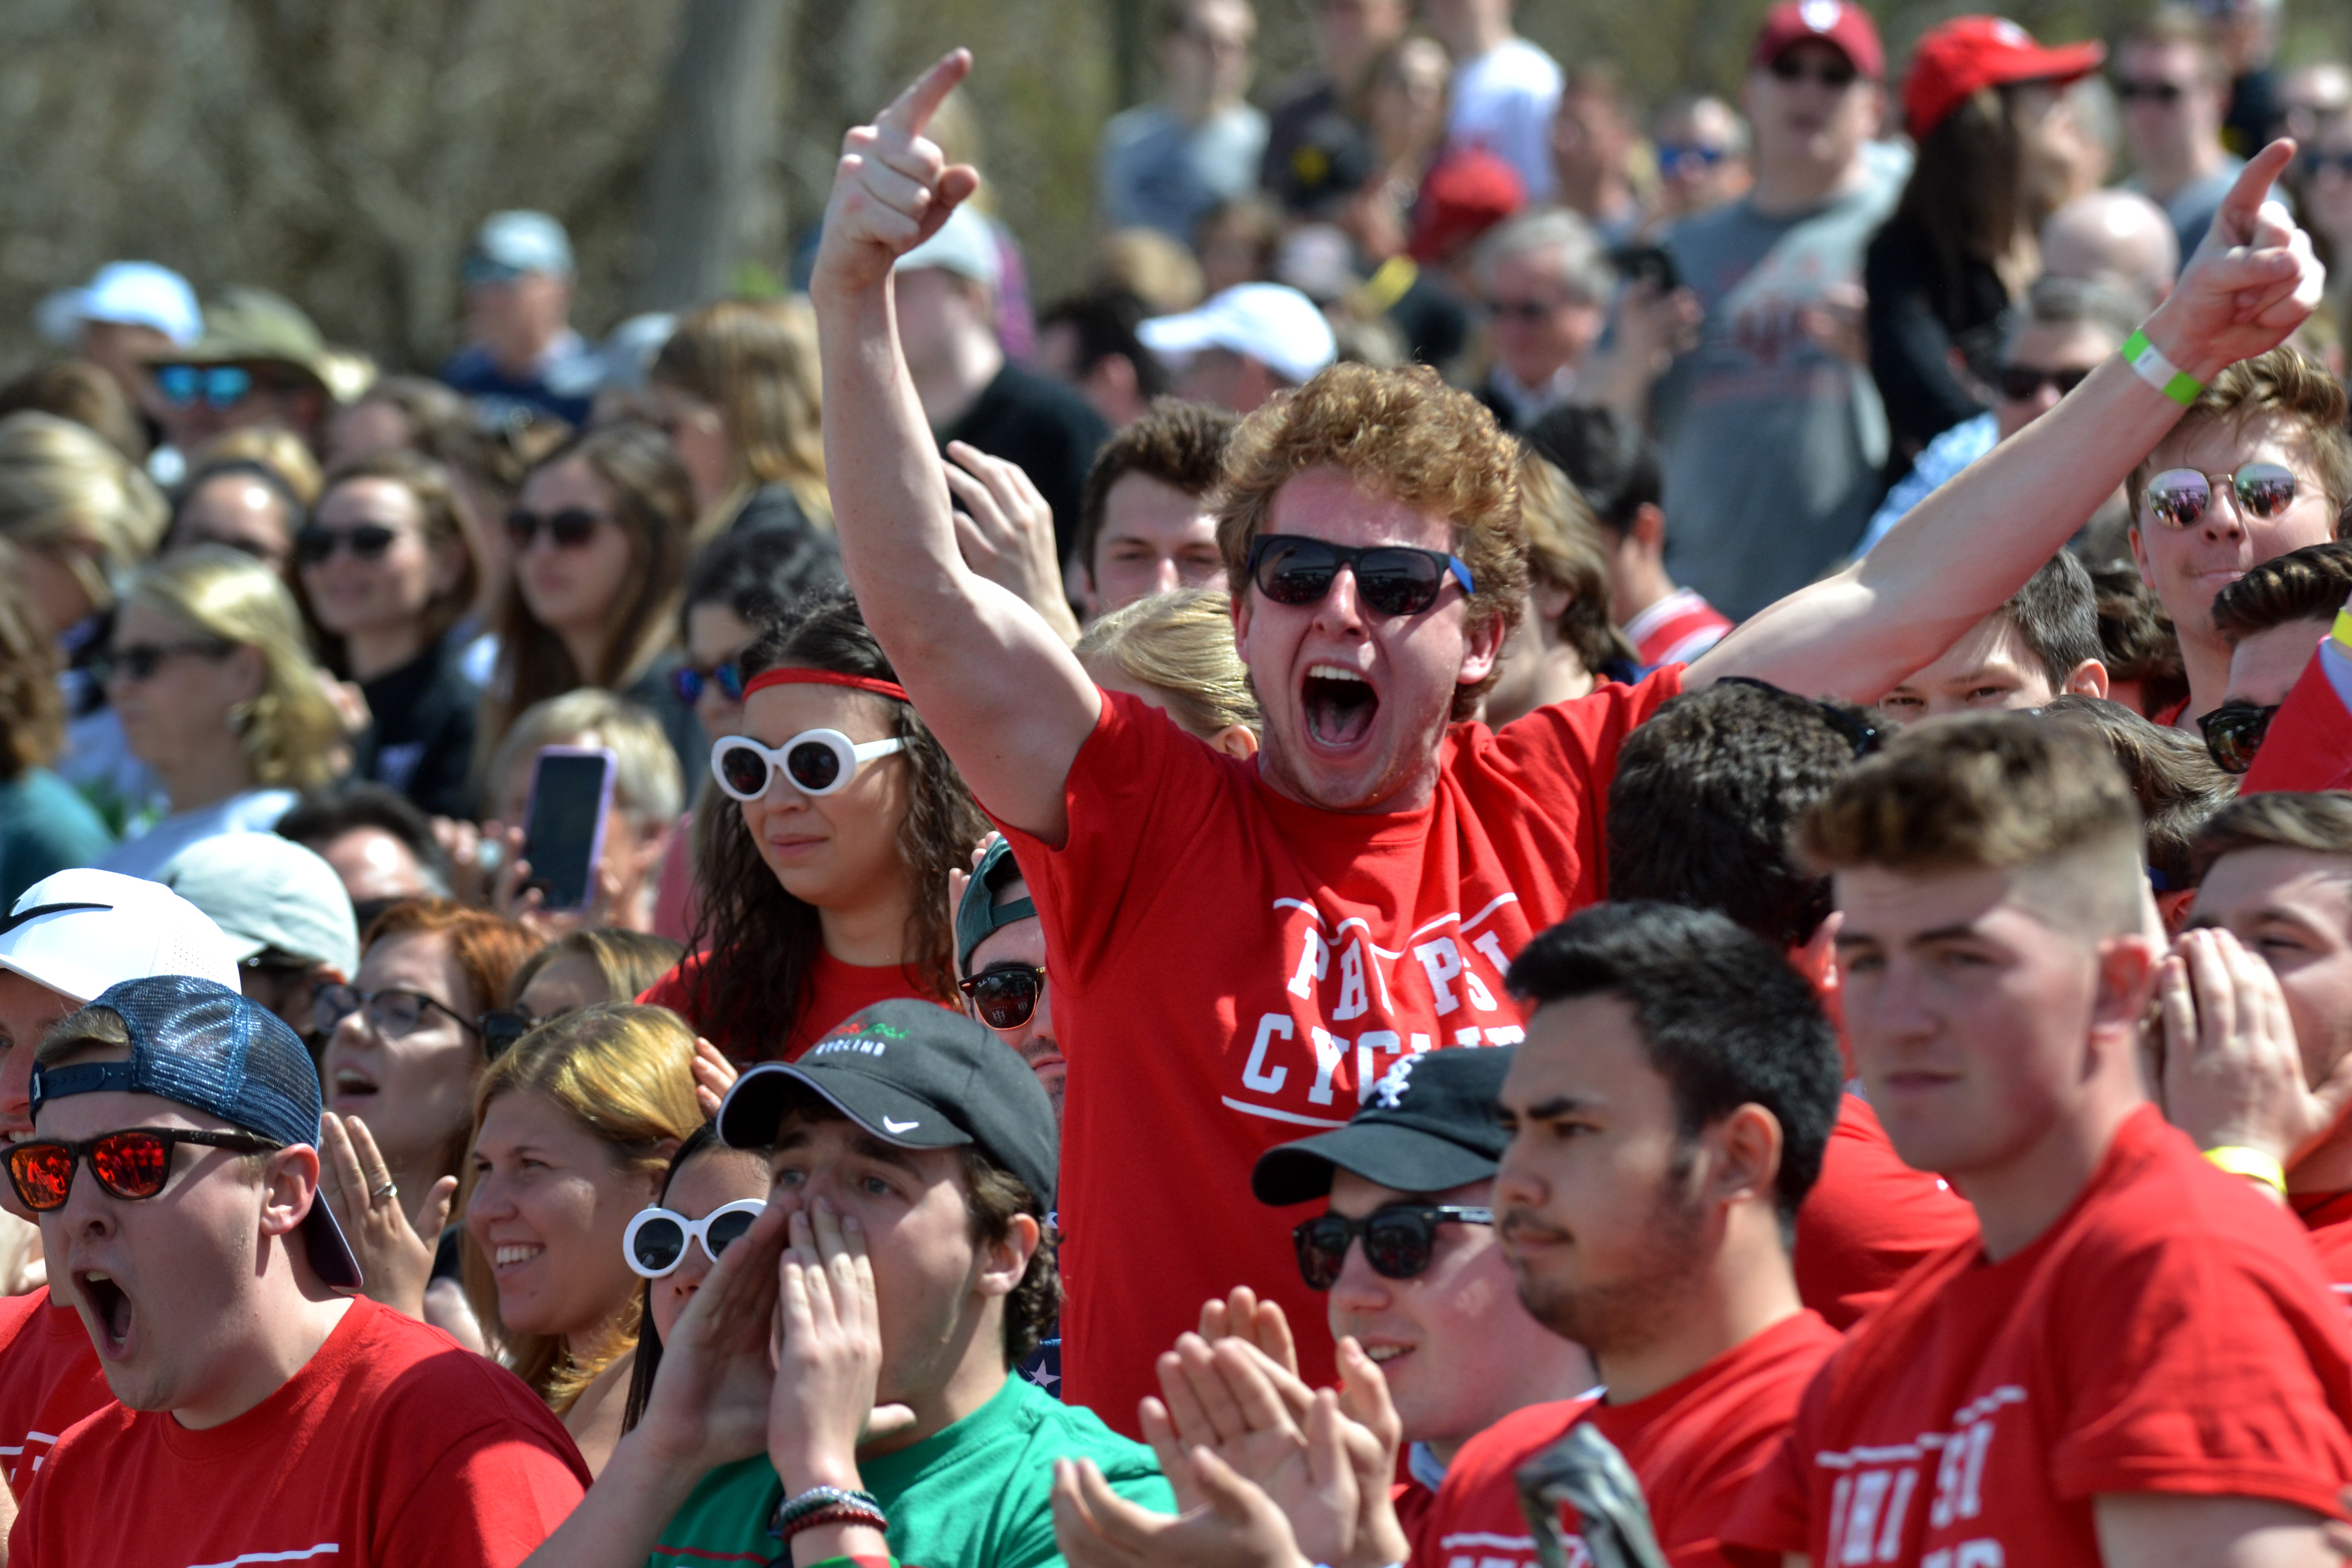 Fans of Phi Kappa Psi cheer April 13, 2019, at the men's Little 500 at Bill Armstrong Stadium. The IU and the IU Student Foundation announced last month there will be no fans allowed at the race on May 26.